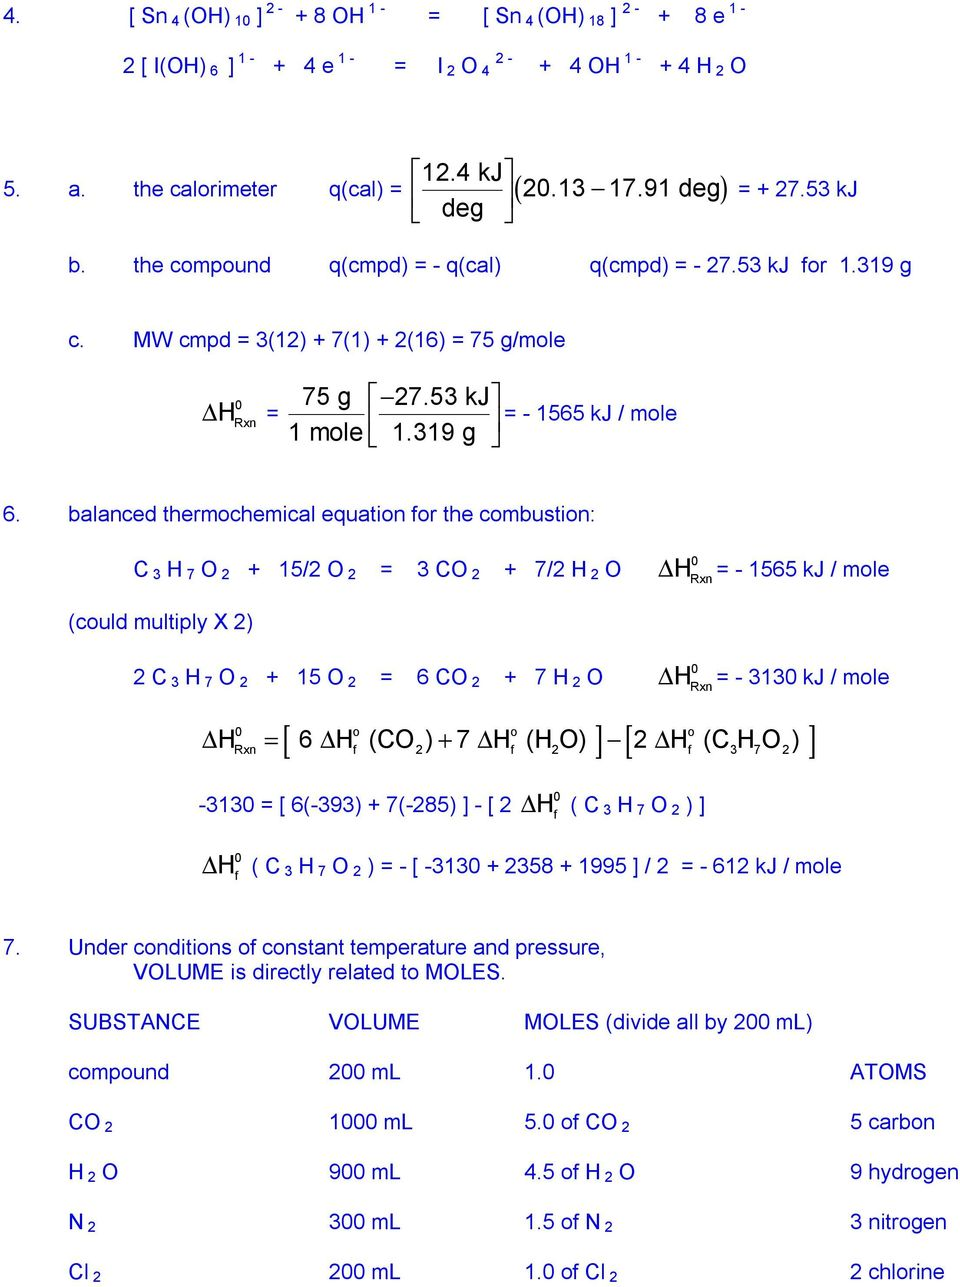 balanced thermochemical equation for the combustion: C 3 H 7 O 2 + 15/2 O 2 = 3 CO 2 + 7/2 H 2 O H Rxn = - 1565 k / mole (could multiply X 2) 2 C 3 H 7 O 2 + 15 O 2 = 6 CO 2 + 7 H 2 O H Rxn = - 313 k